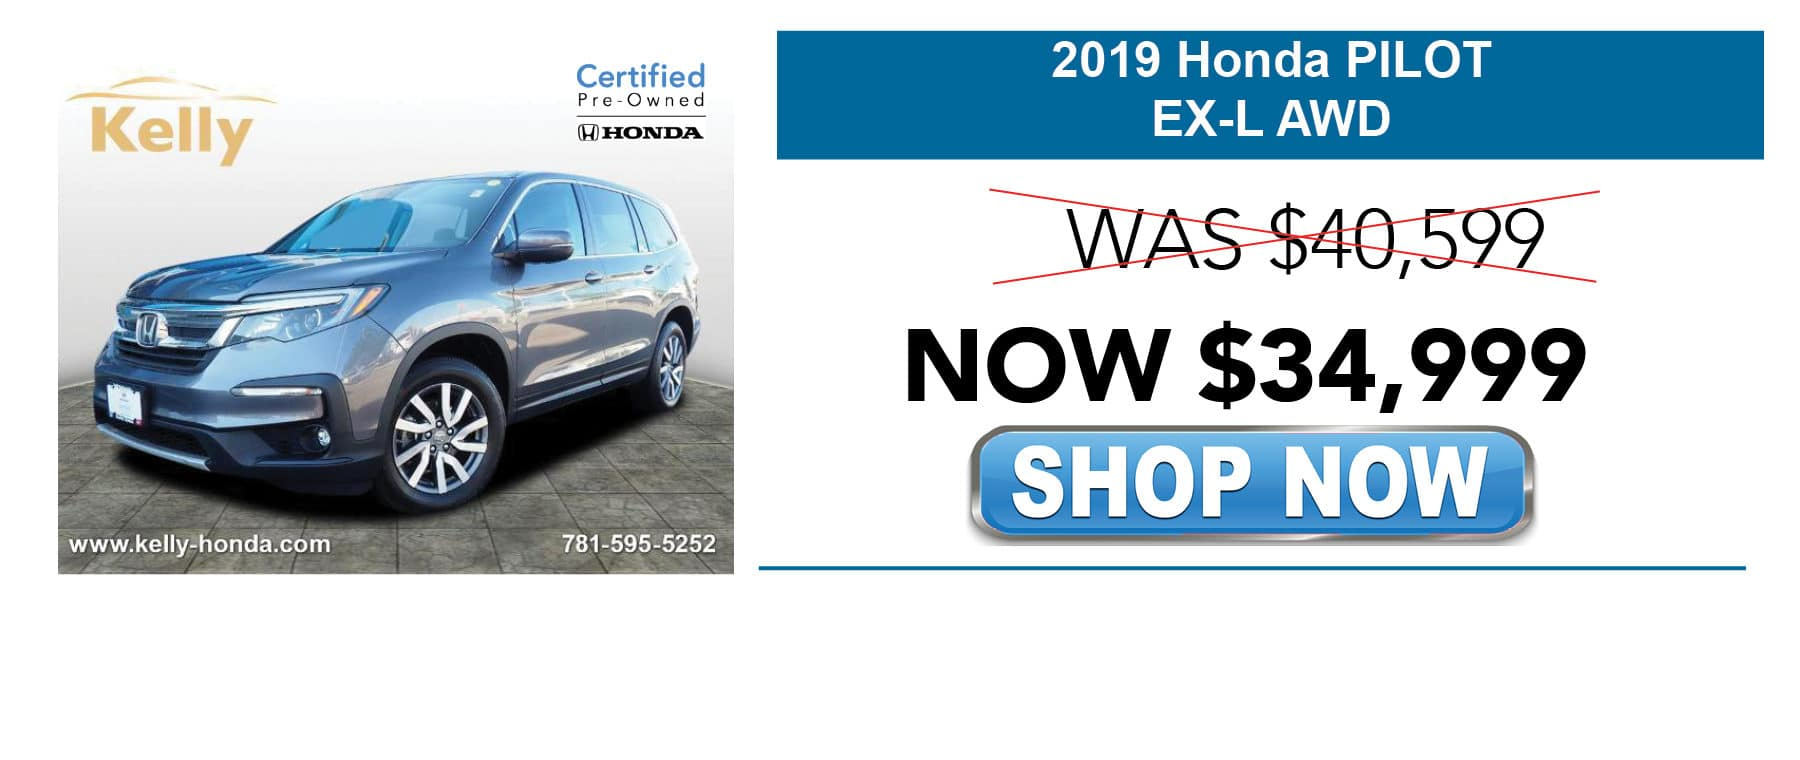 Certified Pre-Owned 2019 Honda Pilot EX-L Now $34,999